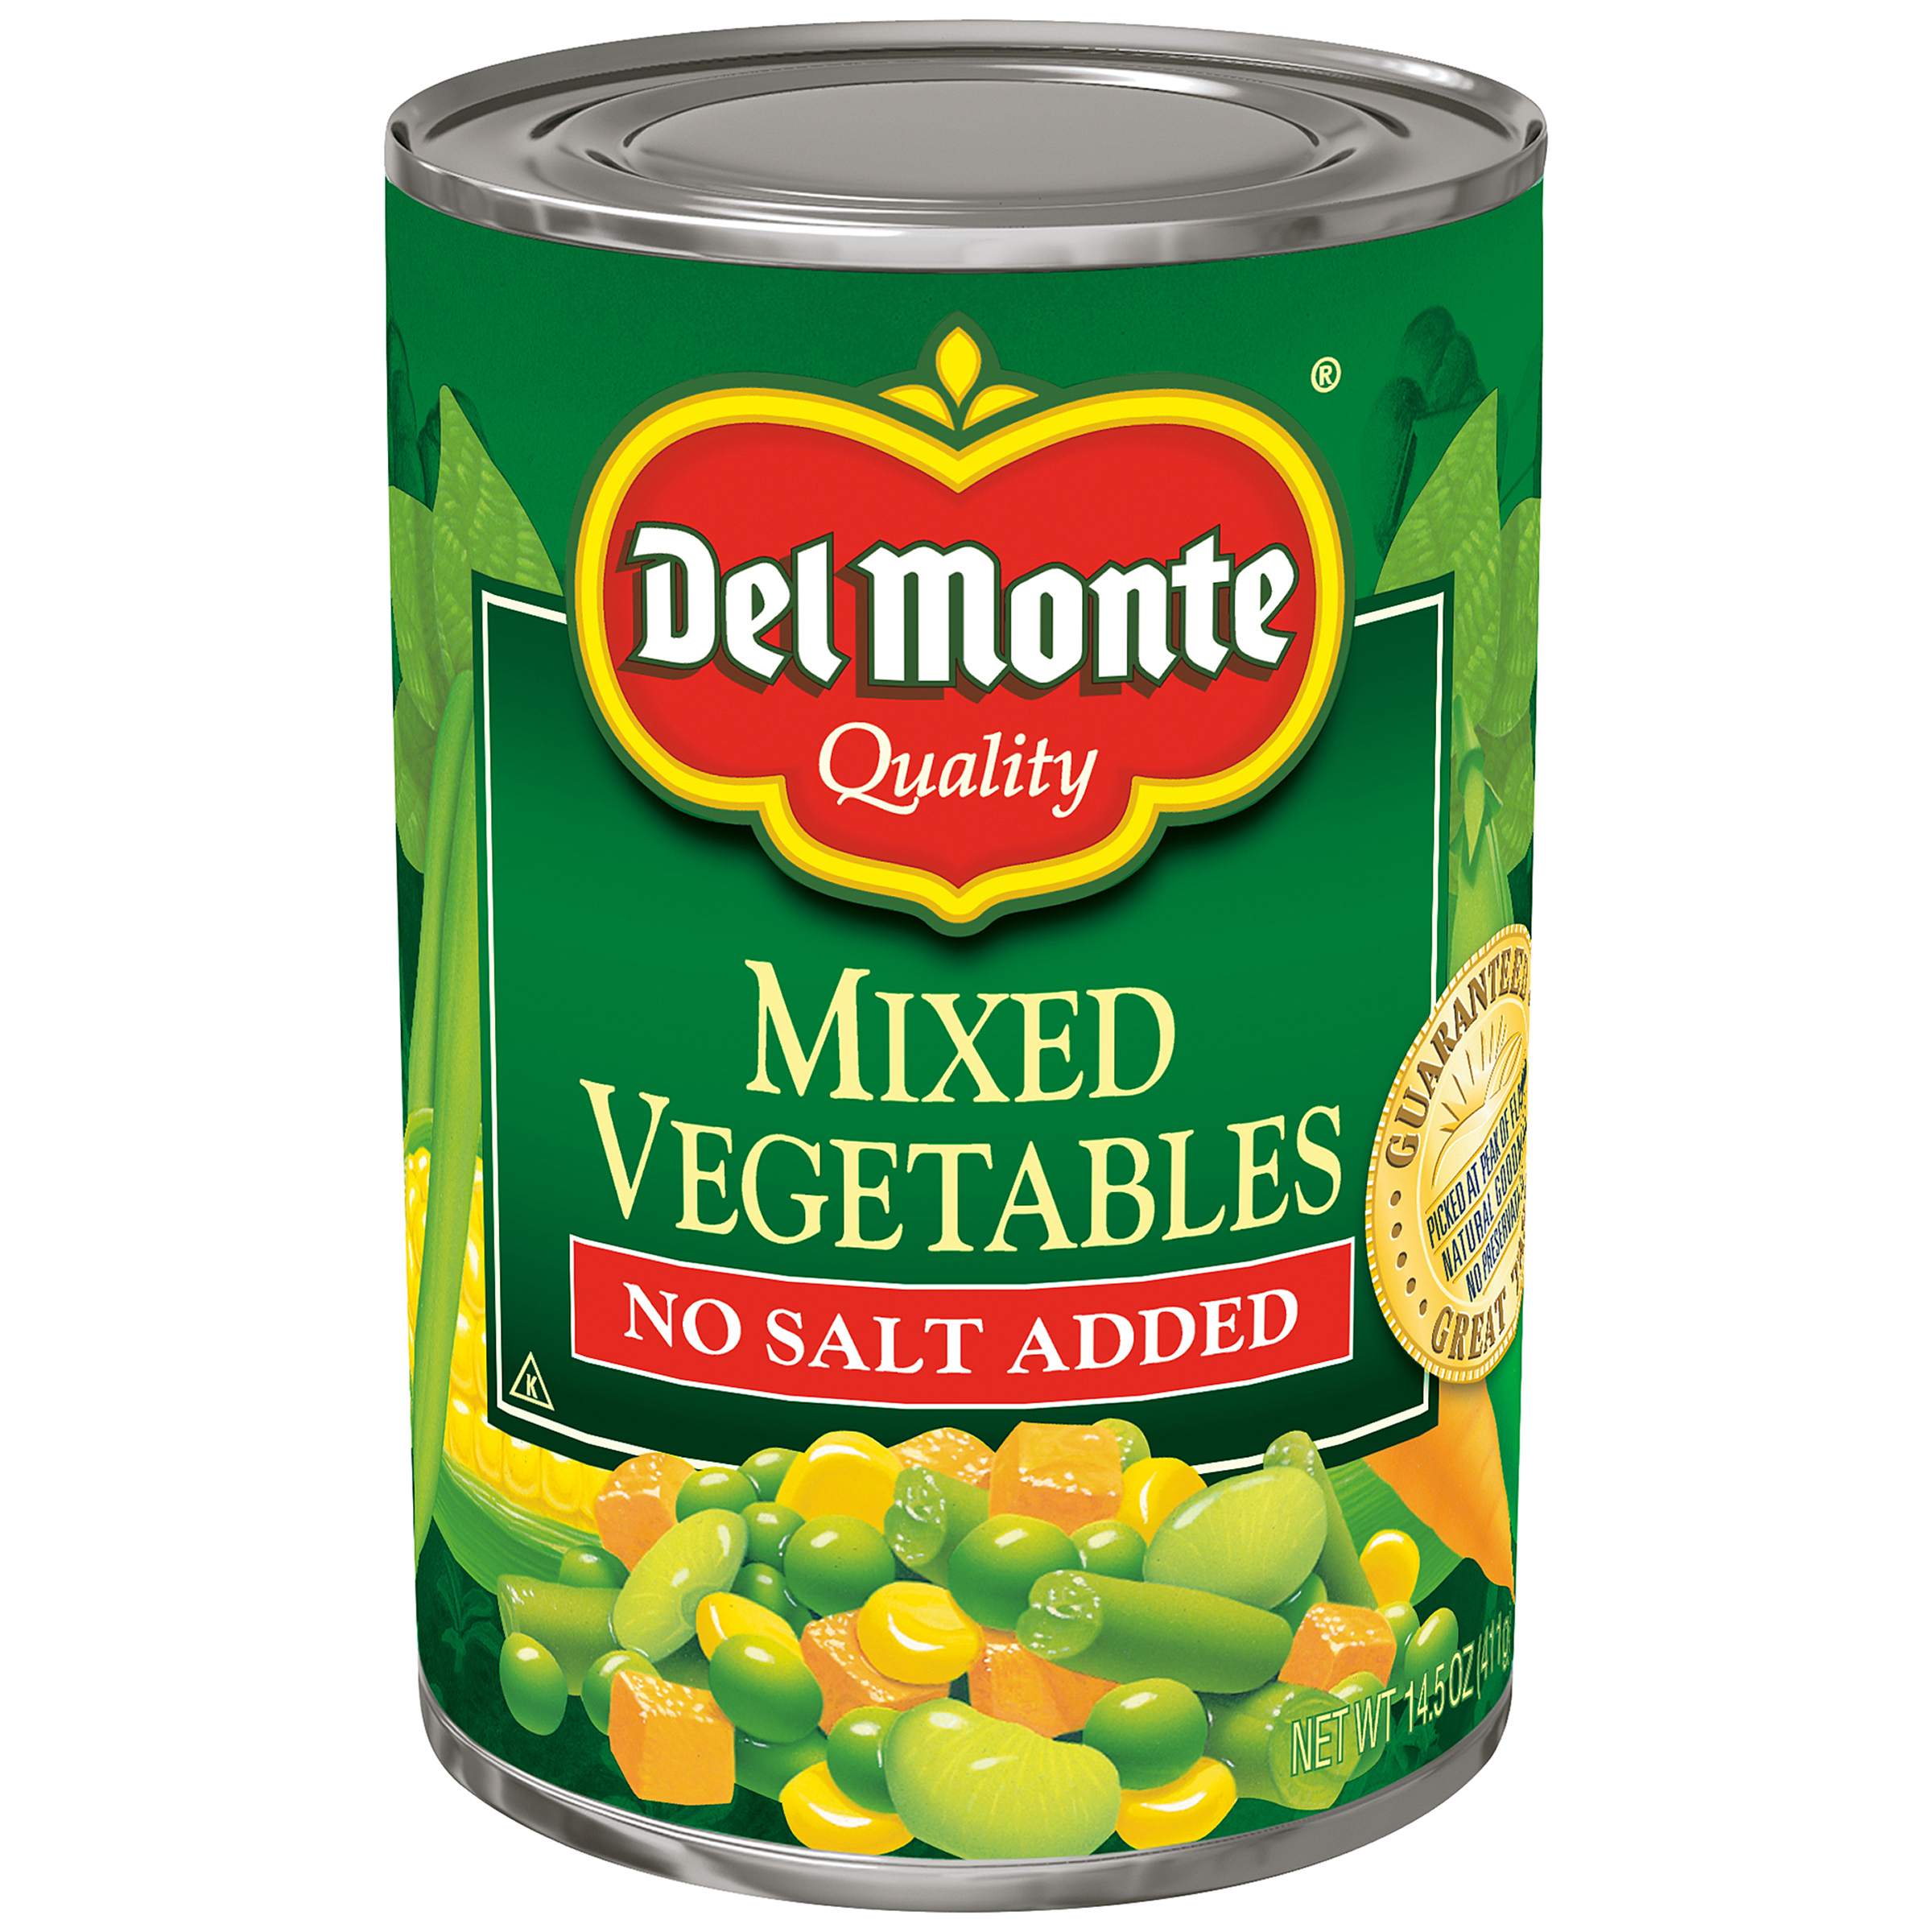 Del Monte Mixed Vegetables, No Salt, 14.5 Oz (Case of 12) by Del Monte Foods Inc